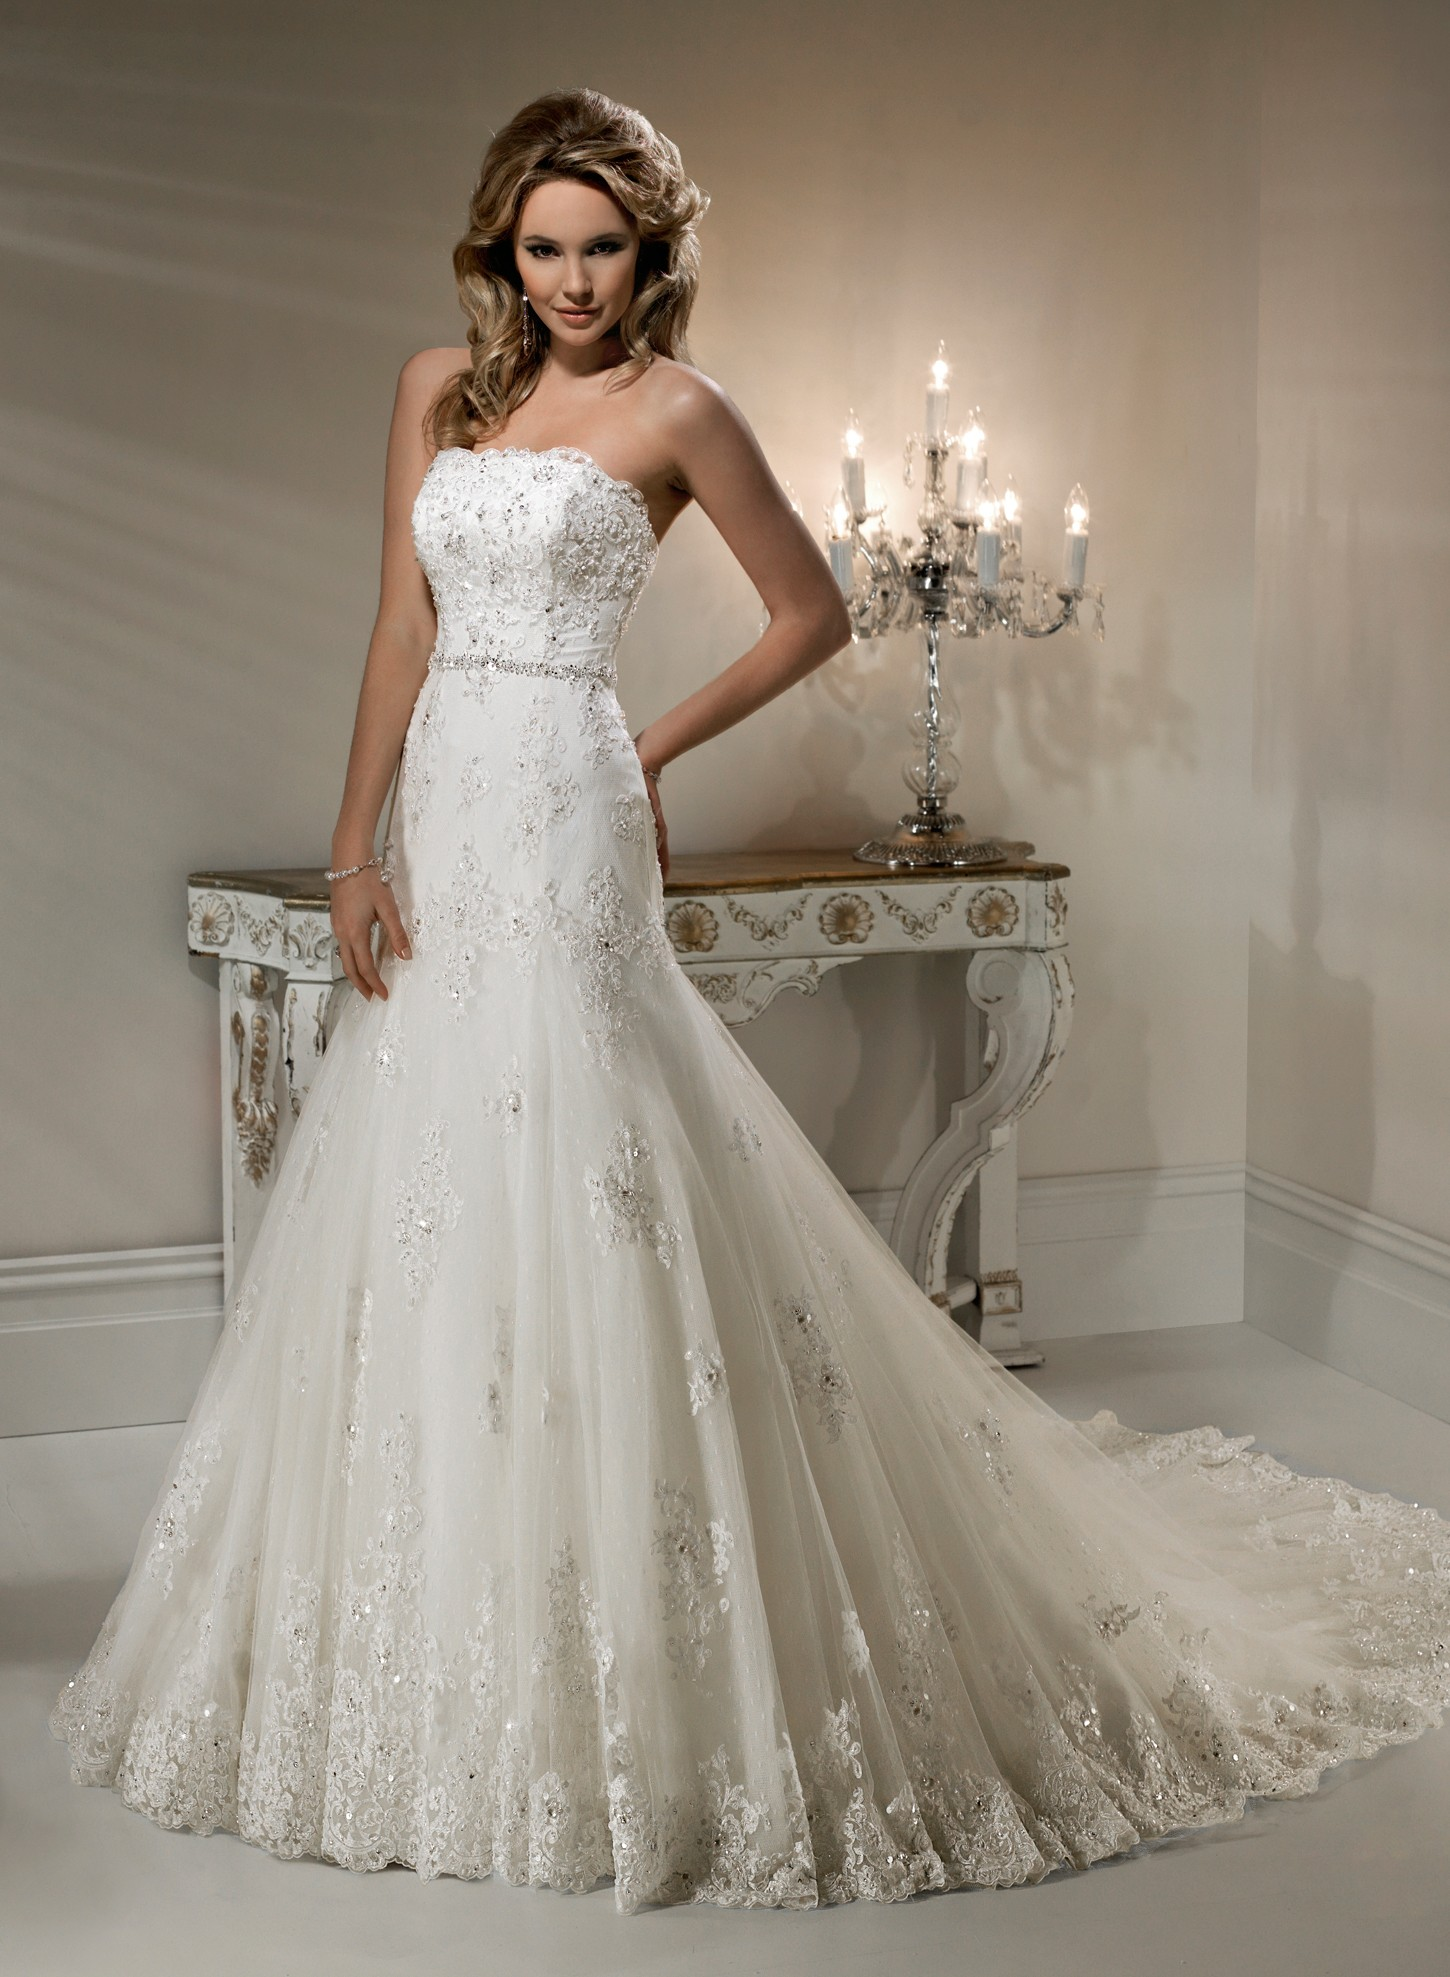 Lace wedding dress dressed up girl for Wedding dresses in uk